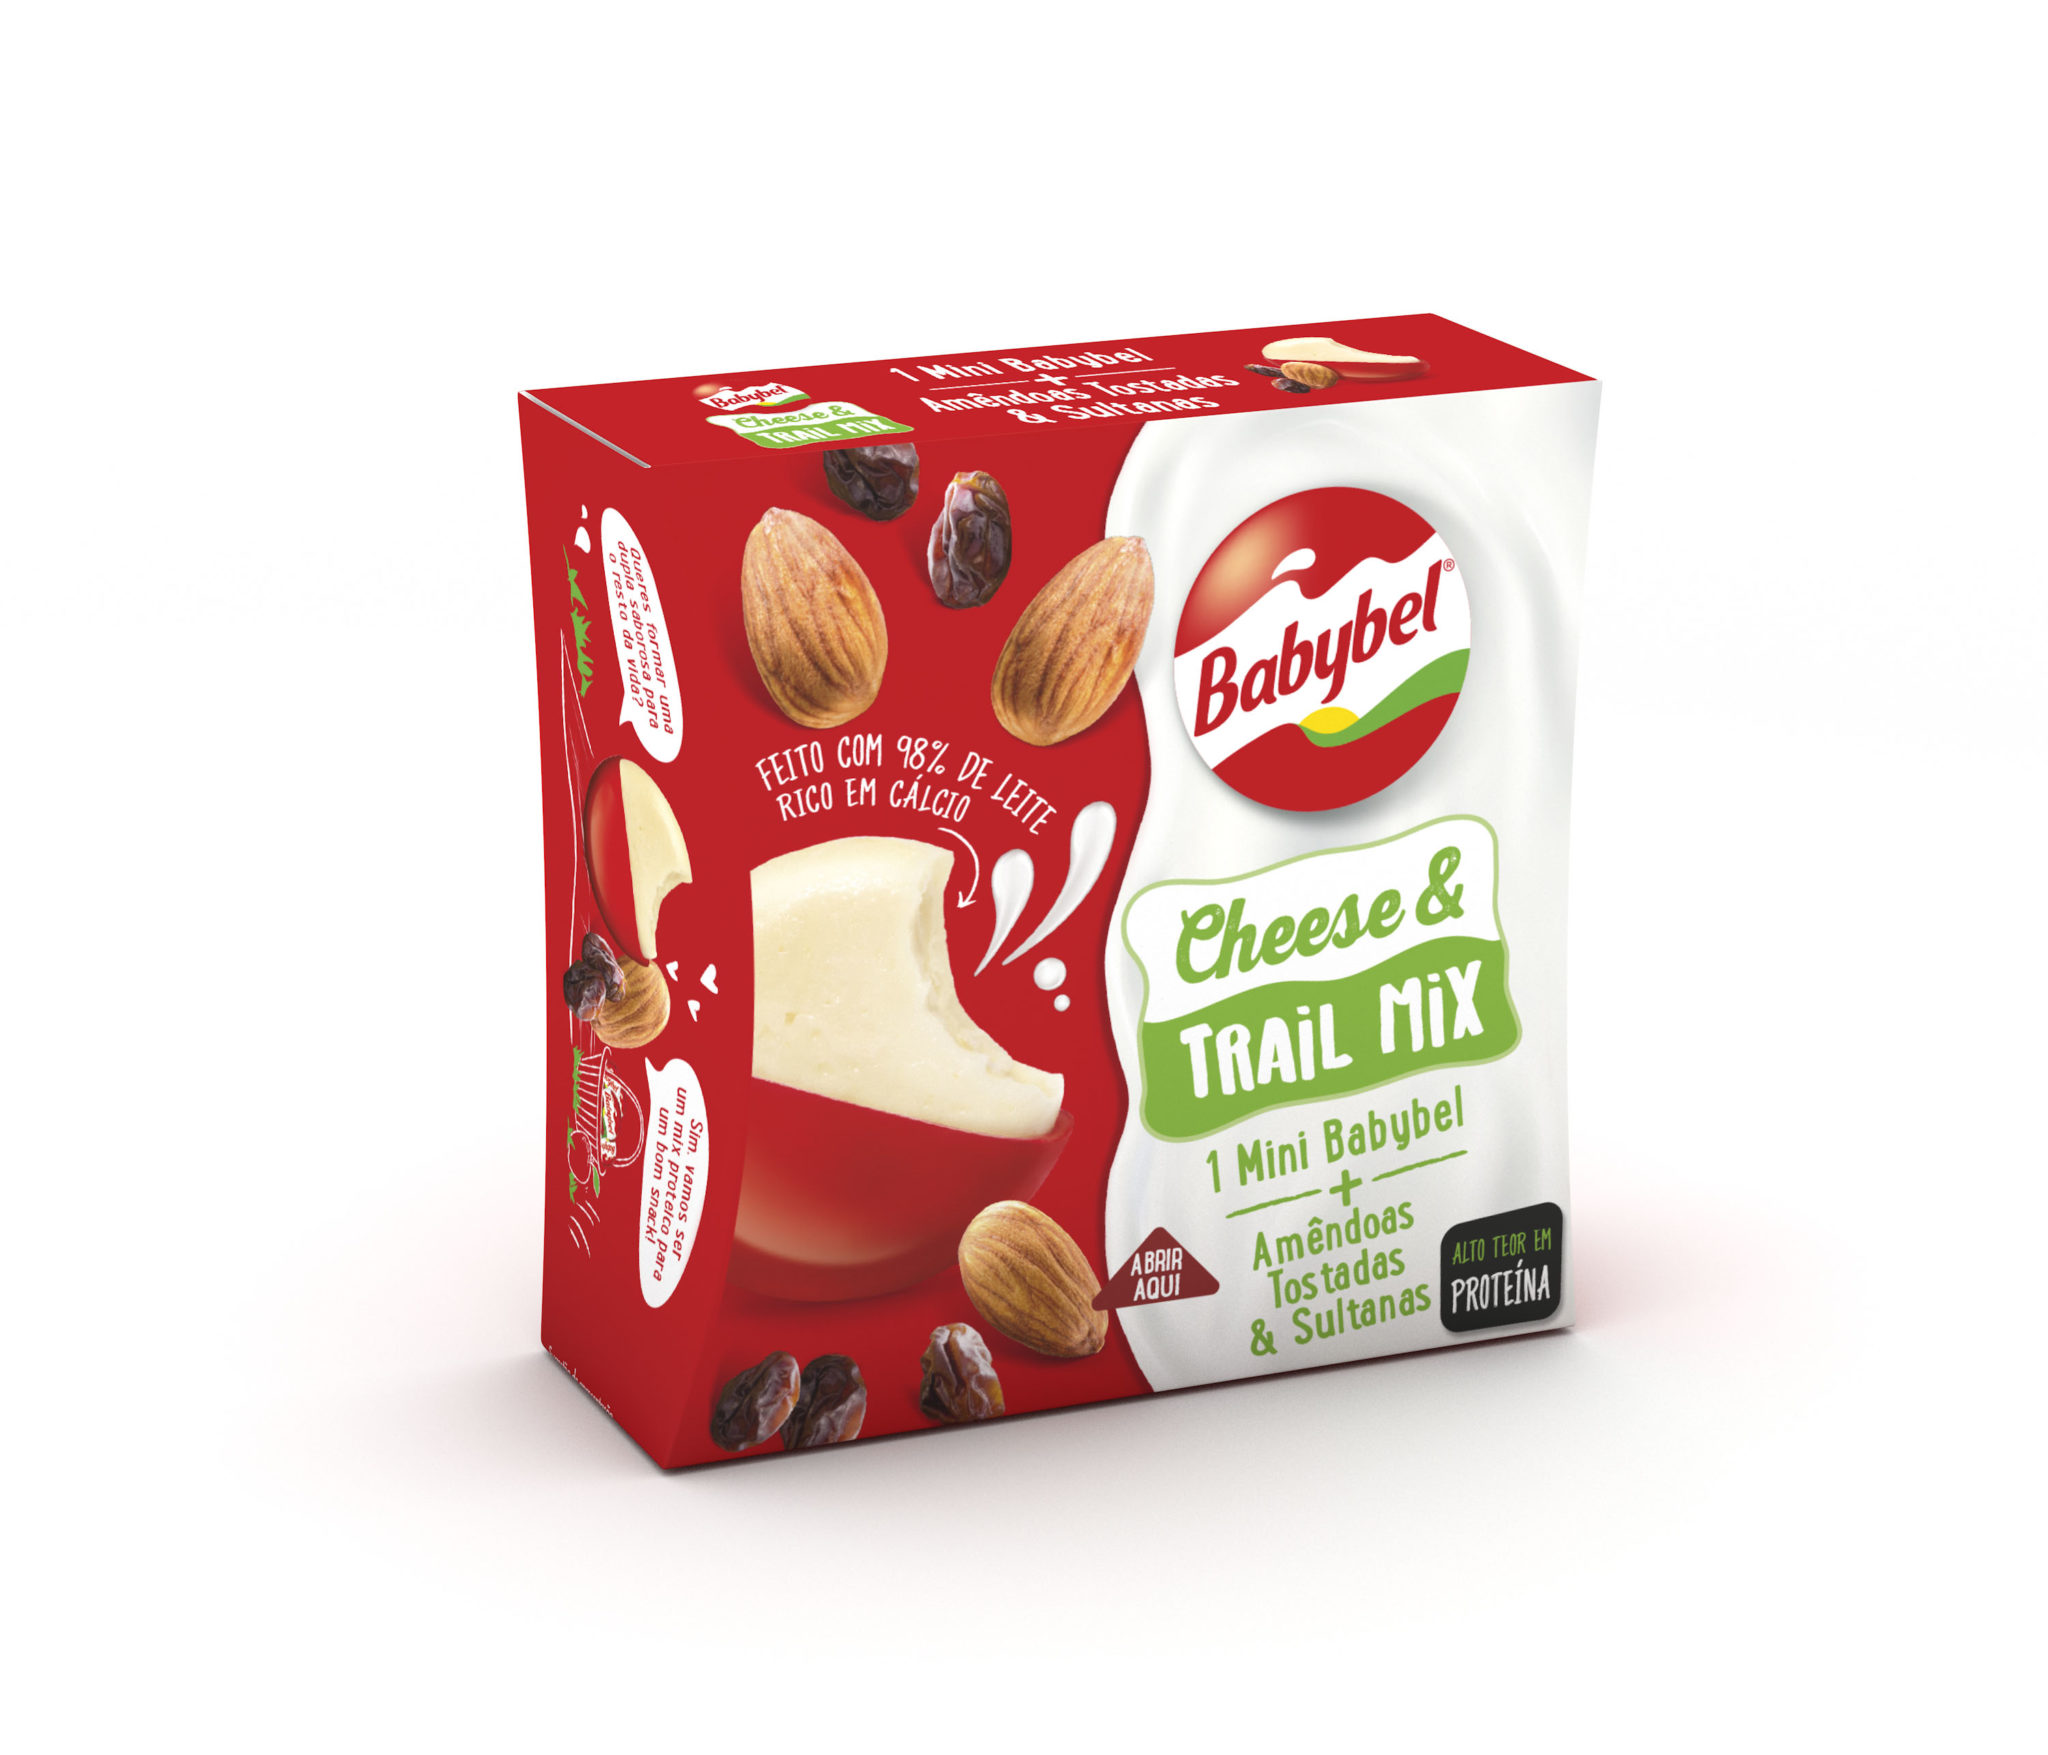 Babybel Cheese & Trail Mix